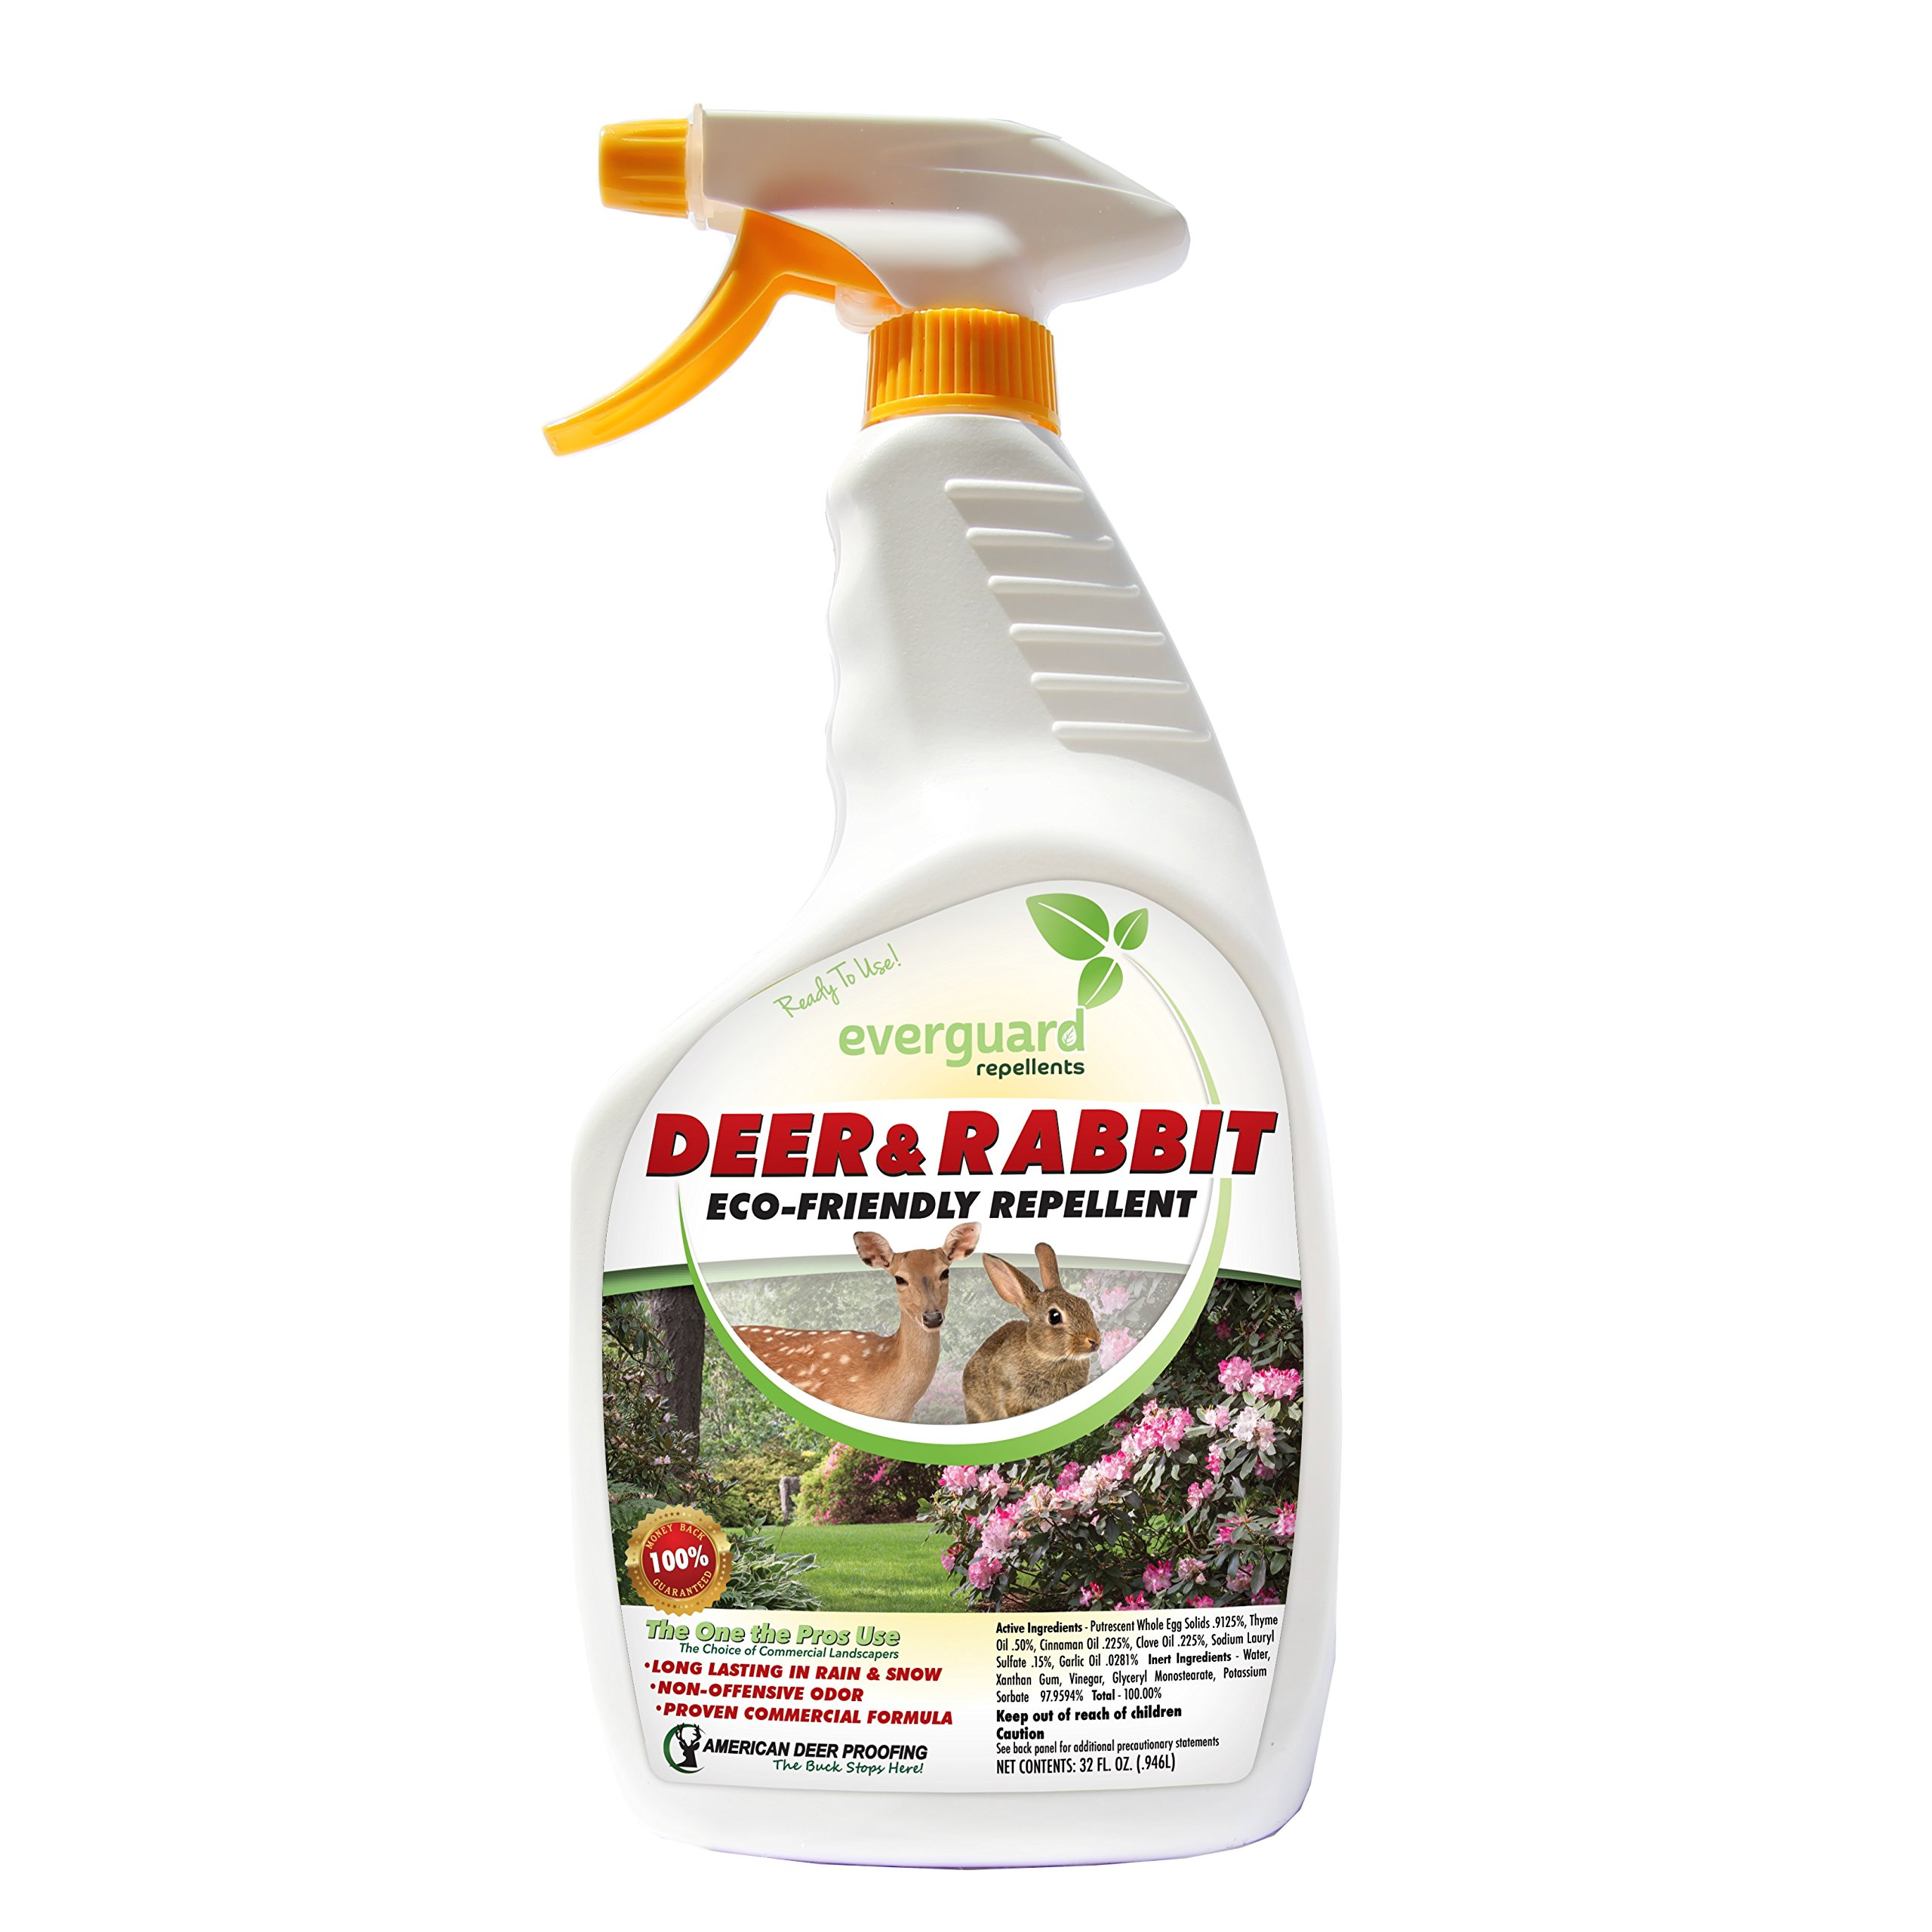 Everguard ADPR032 Ready to Spray Deer and Rabbit Repellent ADPR032 Everguard 32oz RTU Deer & Rabbit Repellent